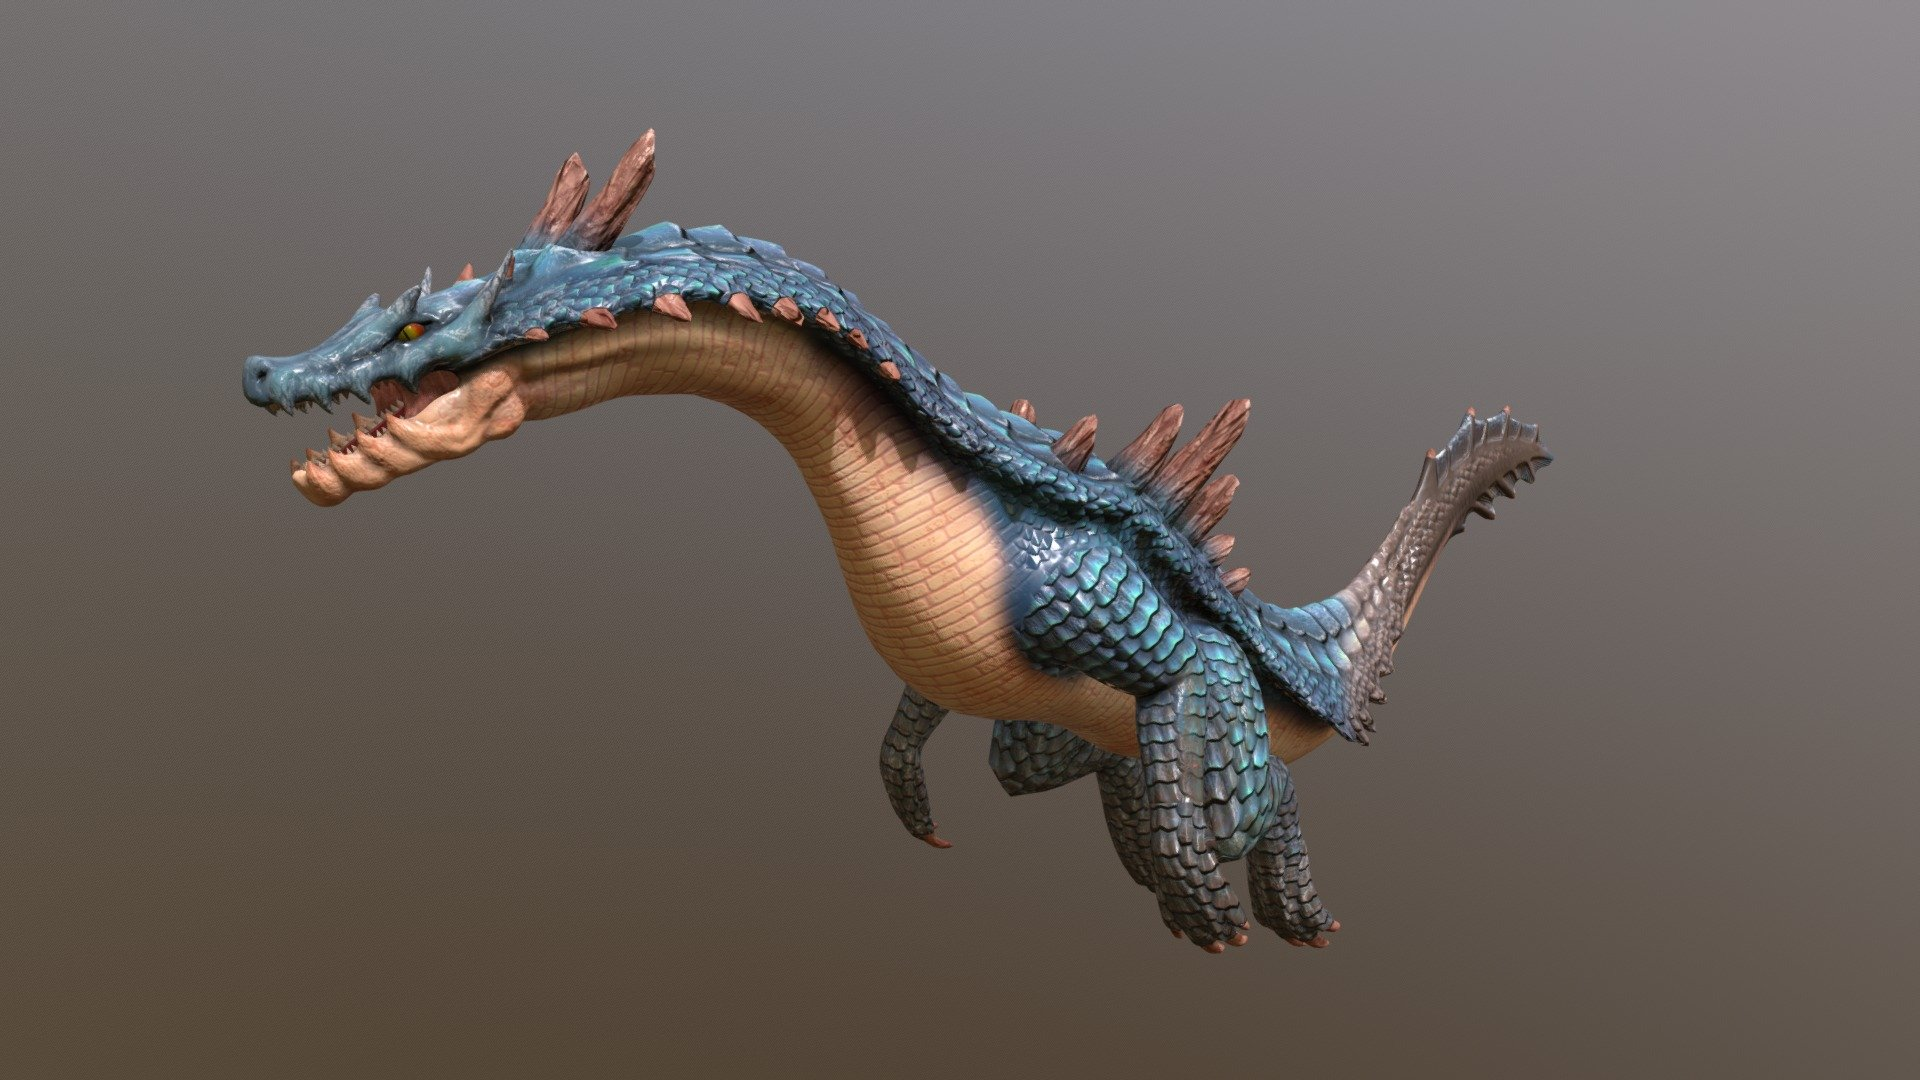 Lagiacrus 3d Model By Sabrinawongzh Sabrinawongzh 59fcaac Sketchfab Find the hottest lagiacrus stories you'll love. lagiacrus 3d model by sabrinawongzh